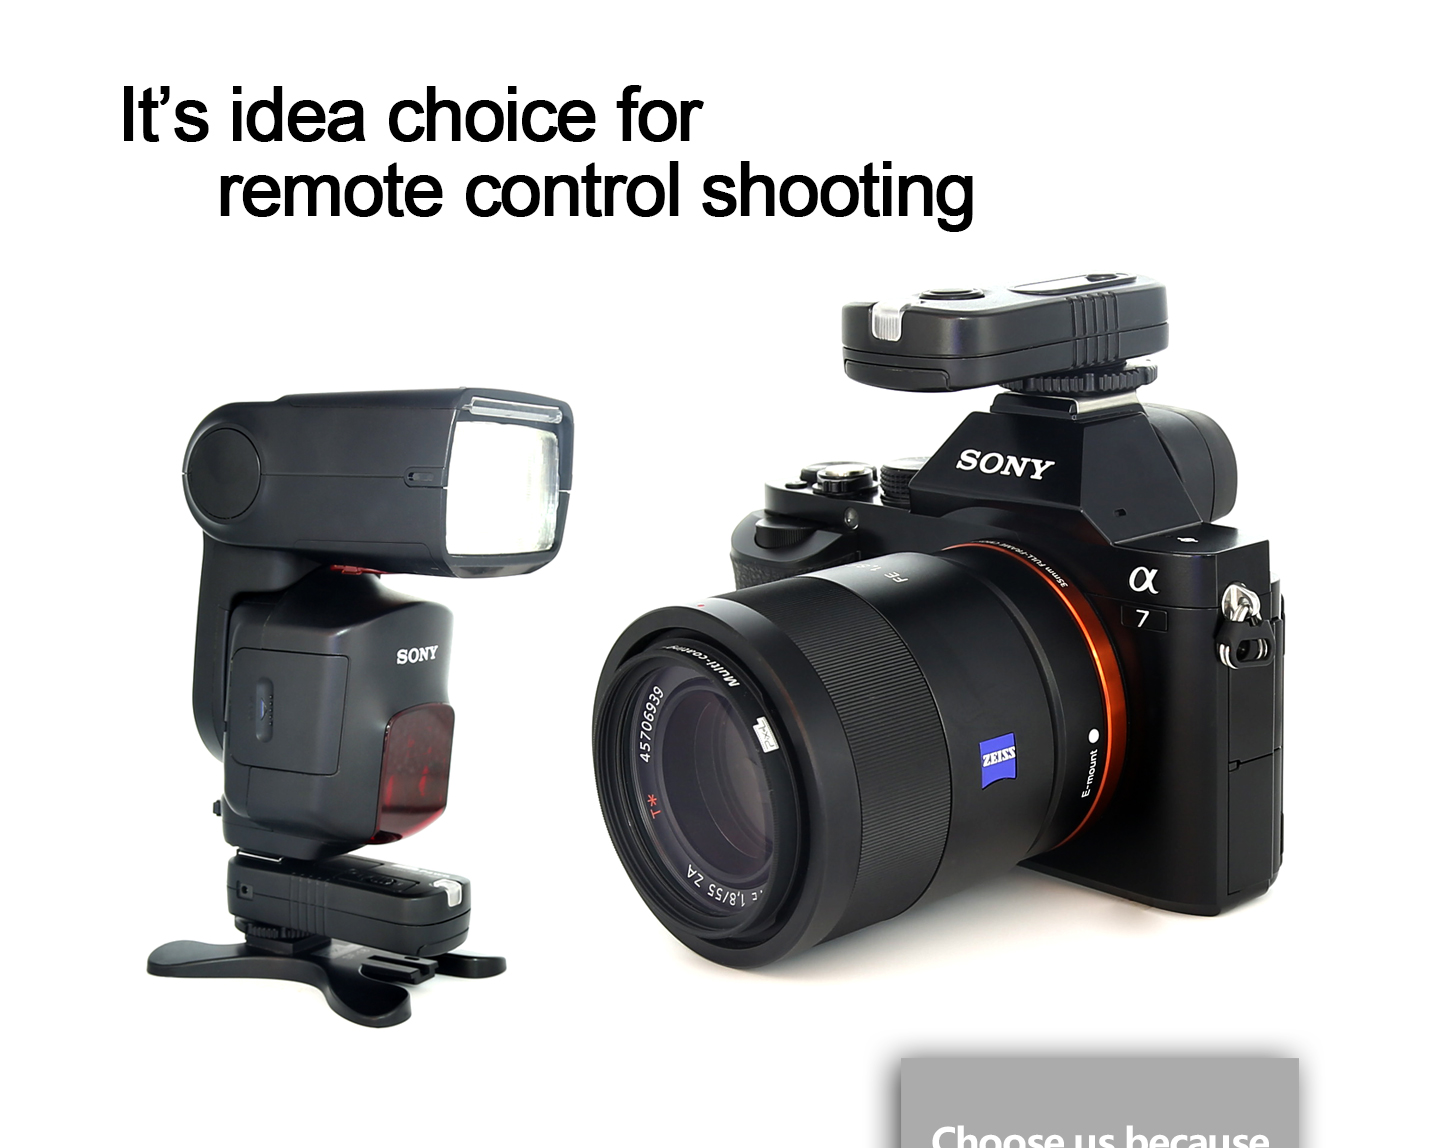 Remote control shooting